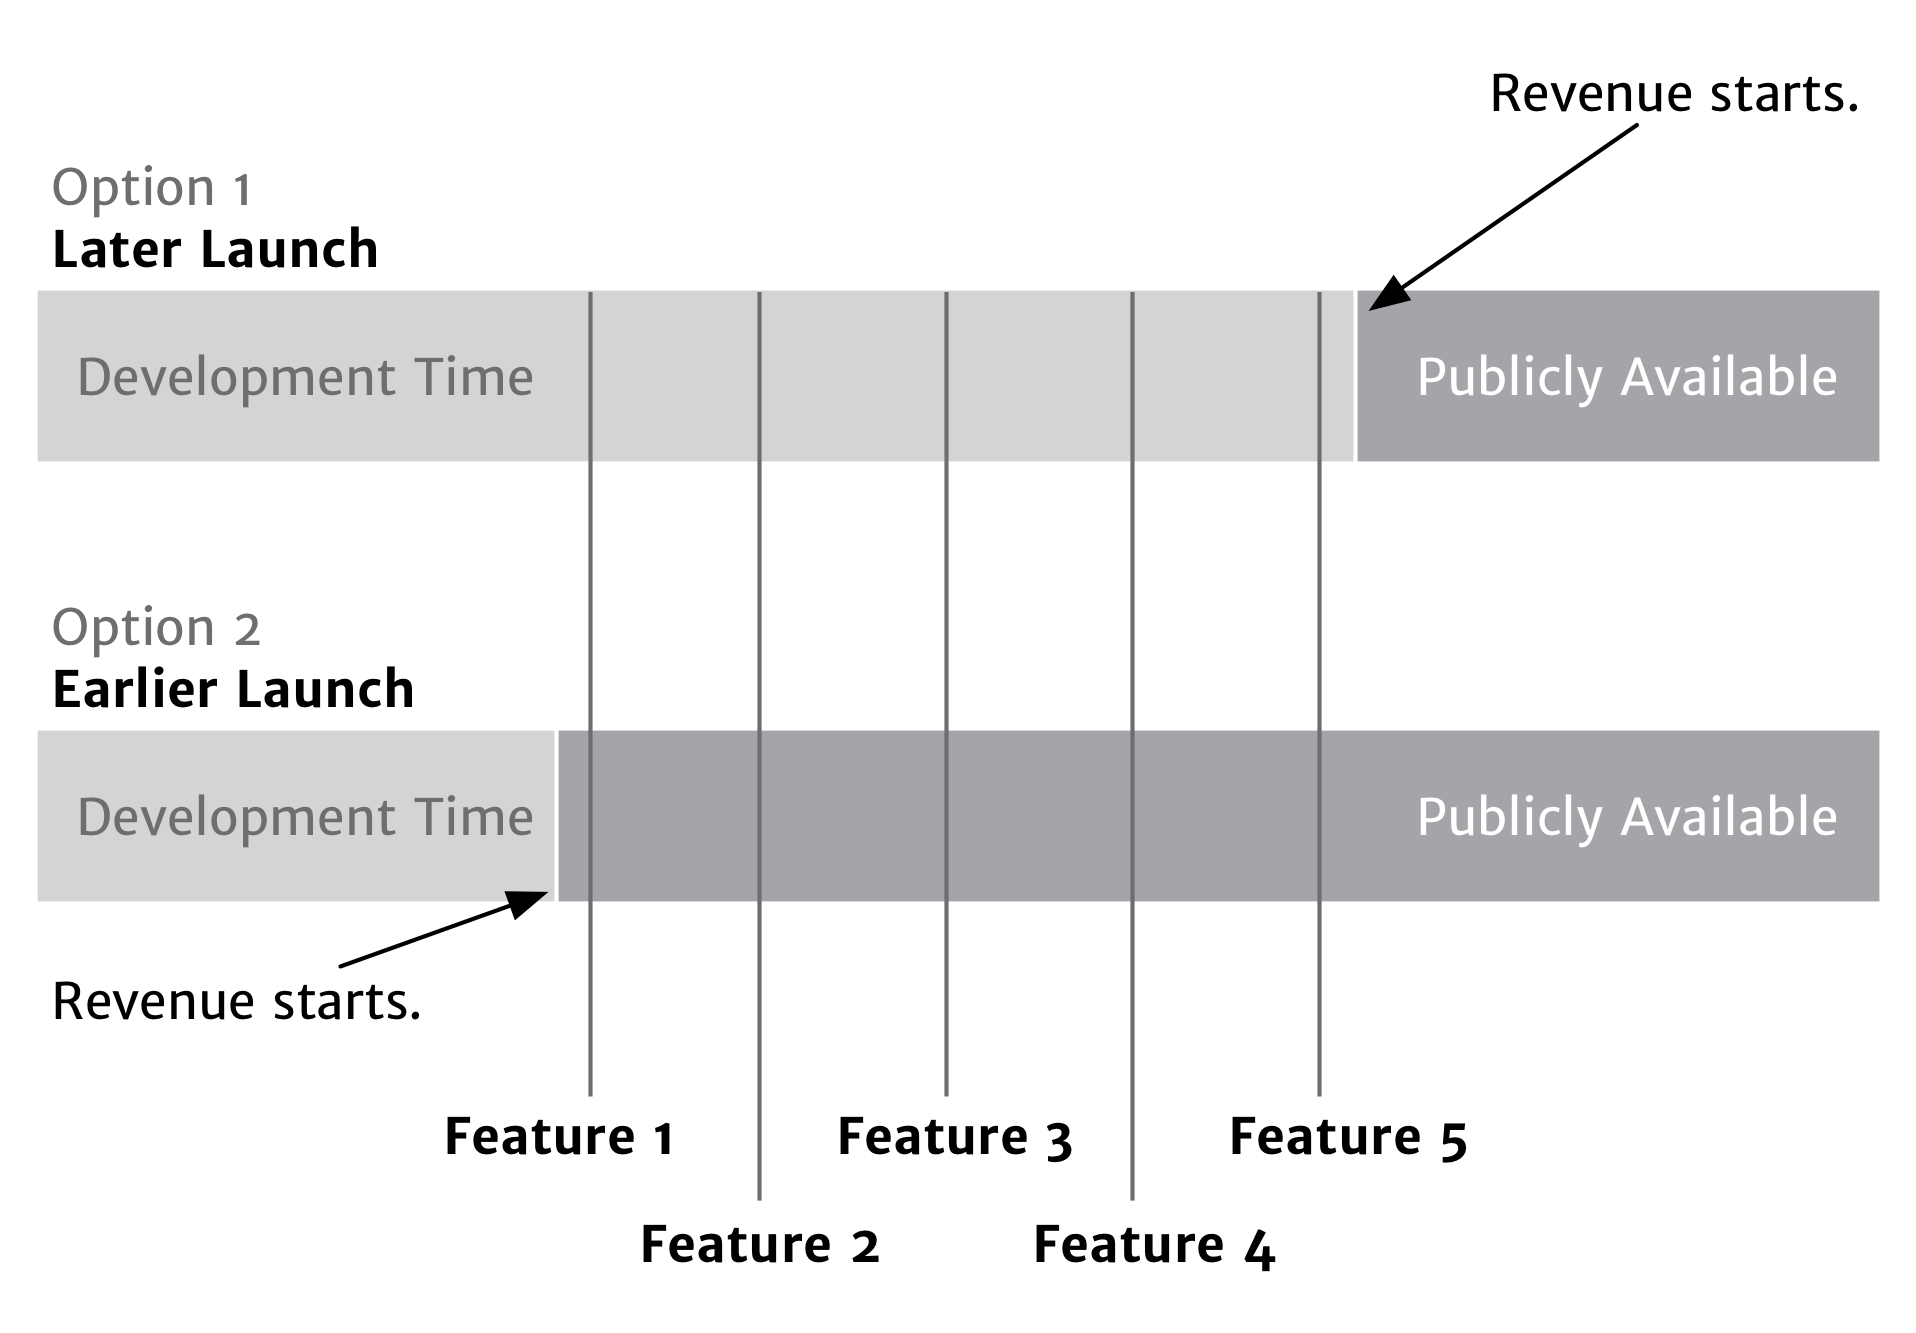 While there are some variations, your launch date--whether early or late--doesn't really affect the pace you can develop new features. (The timing of your launch may affect which features land before or after it, but the pace remains the same.)